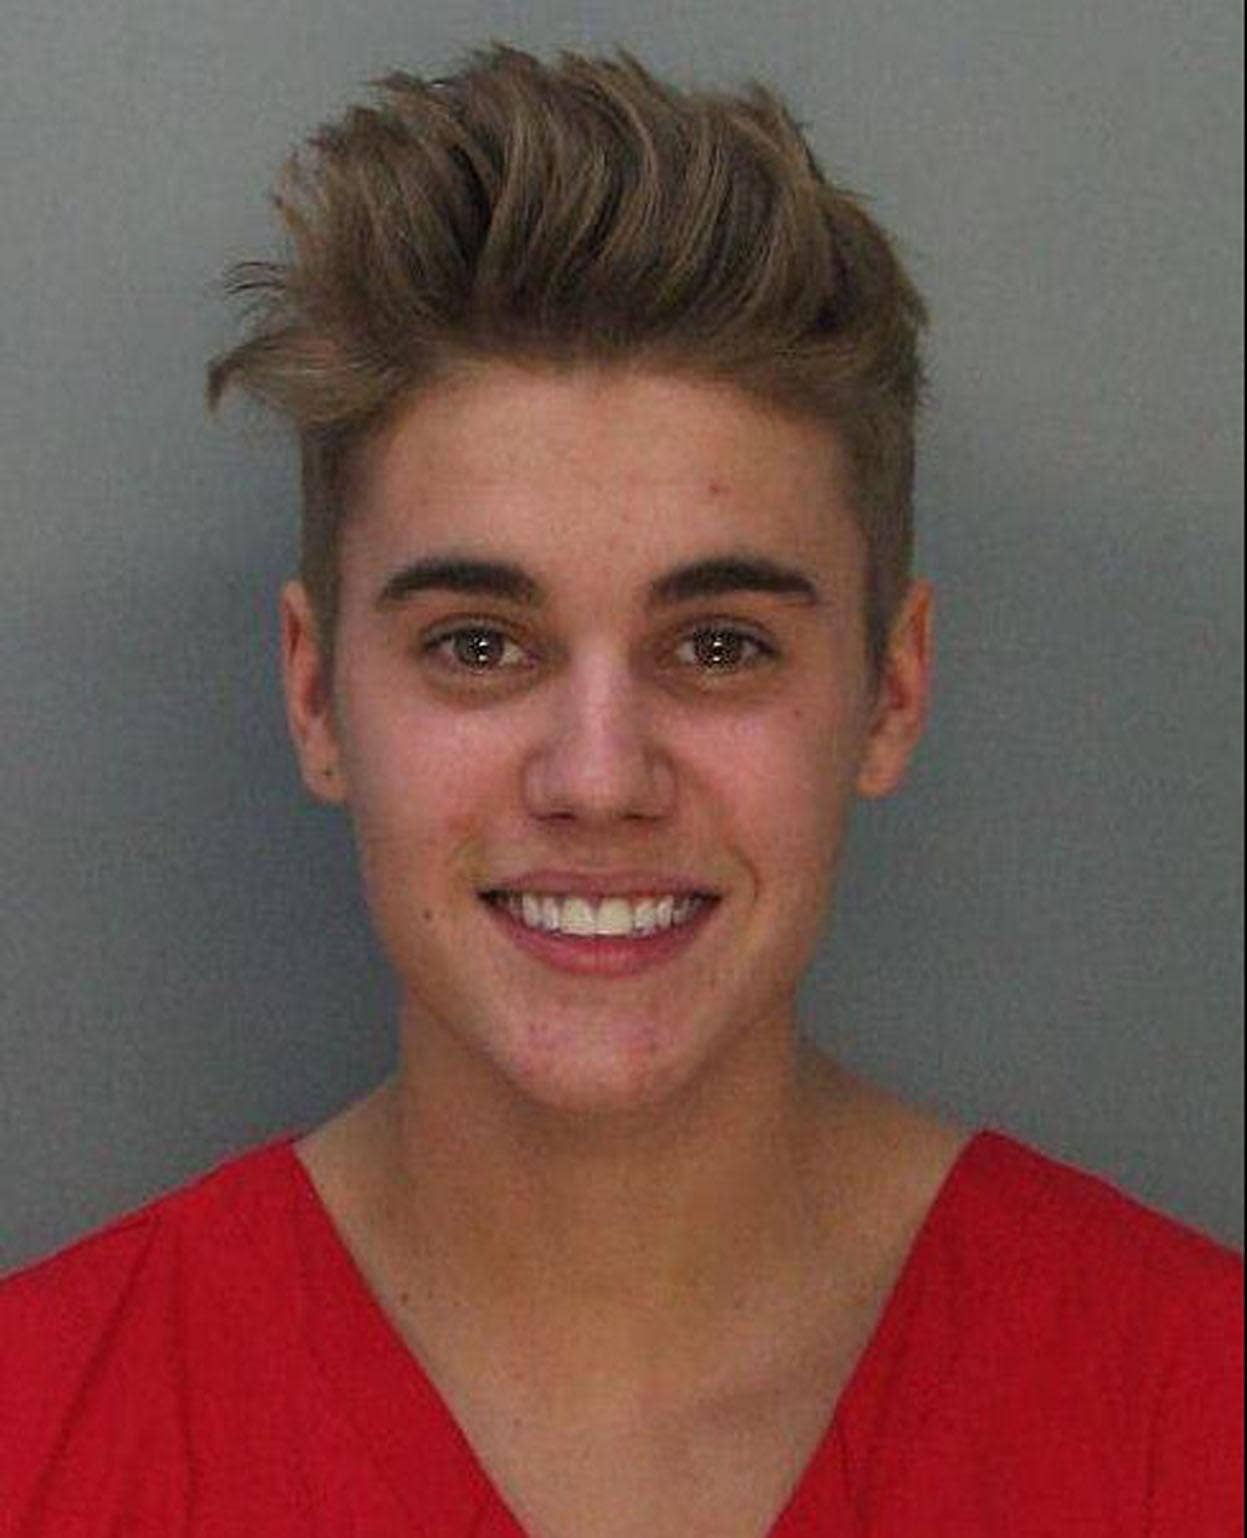 Justin Bieber's mugshot released following arrest for DUI and drag racing